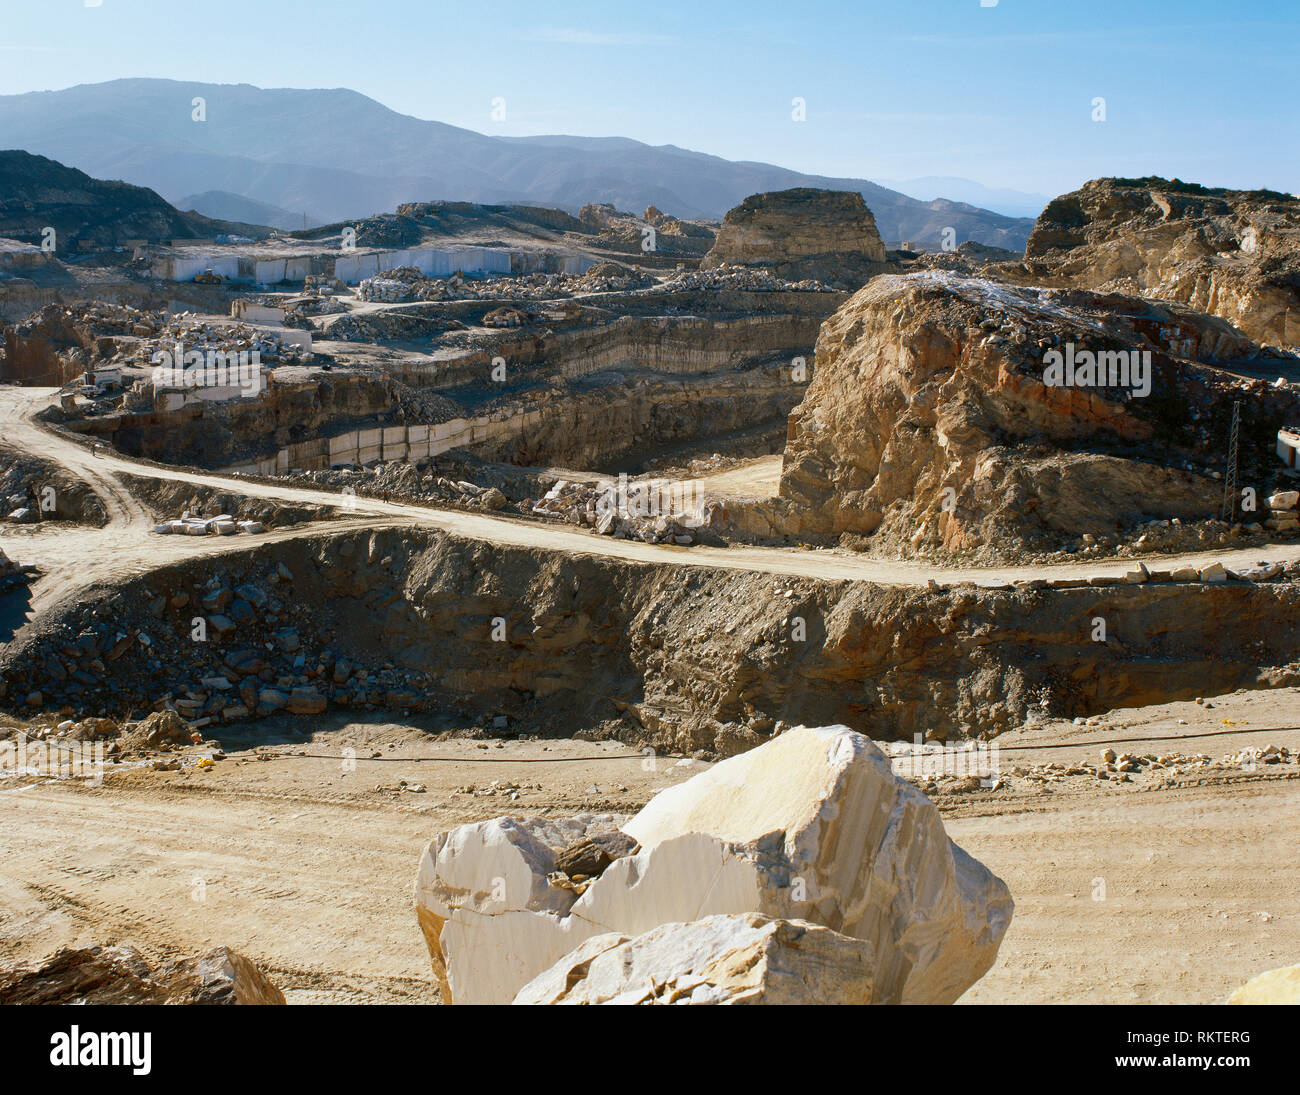 Spain, Andalusia, province of Almeria, Macael. Marble quarry. Landscape. - Stock Image